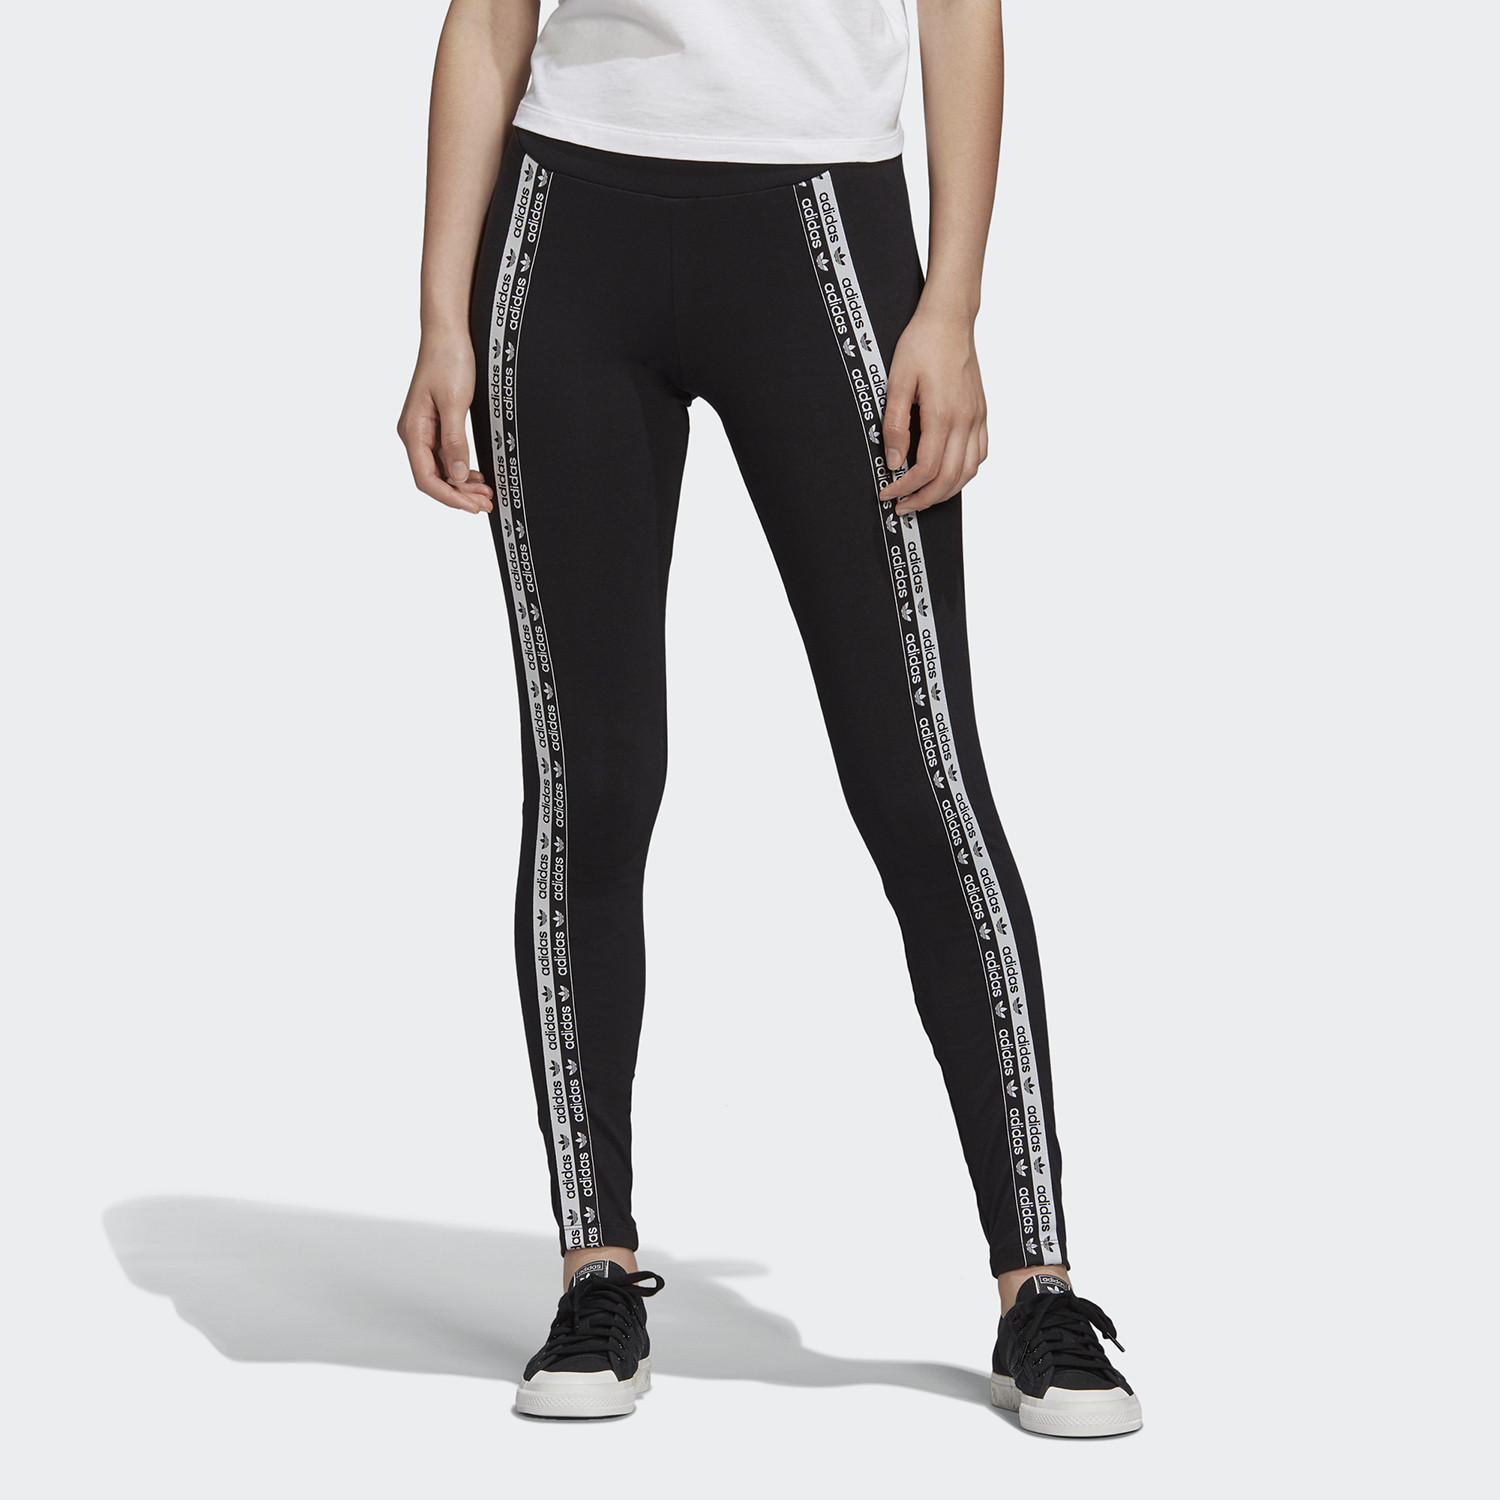 adidas Originals R.y.v. Tights (9000045447_1469)